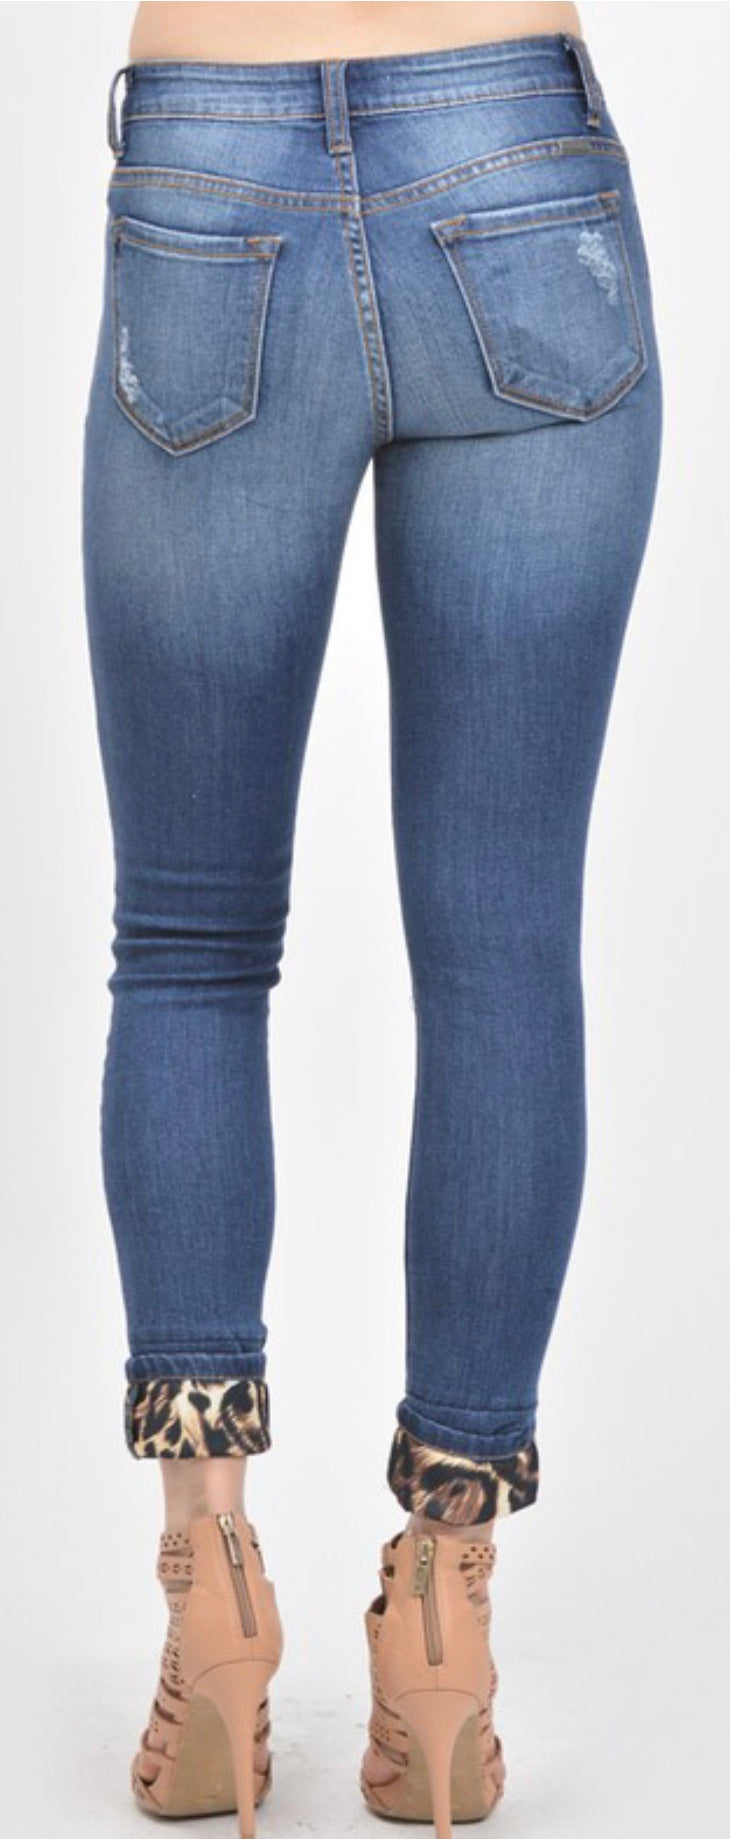 Distressed Leopard Patch Jeans With Free Shipping Wynk Boutique Hastings